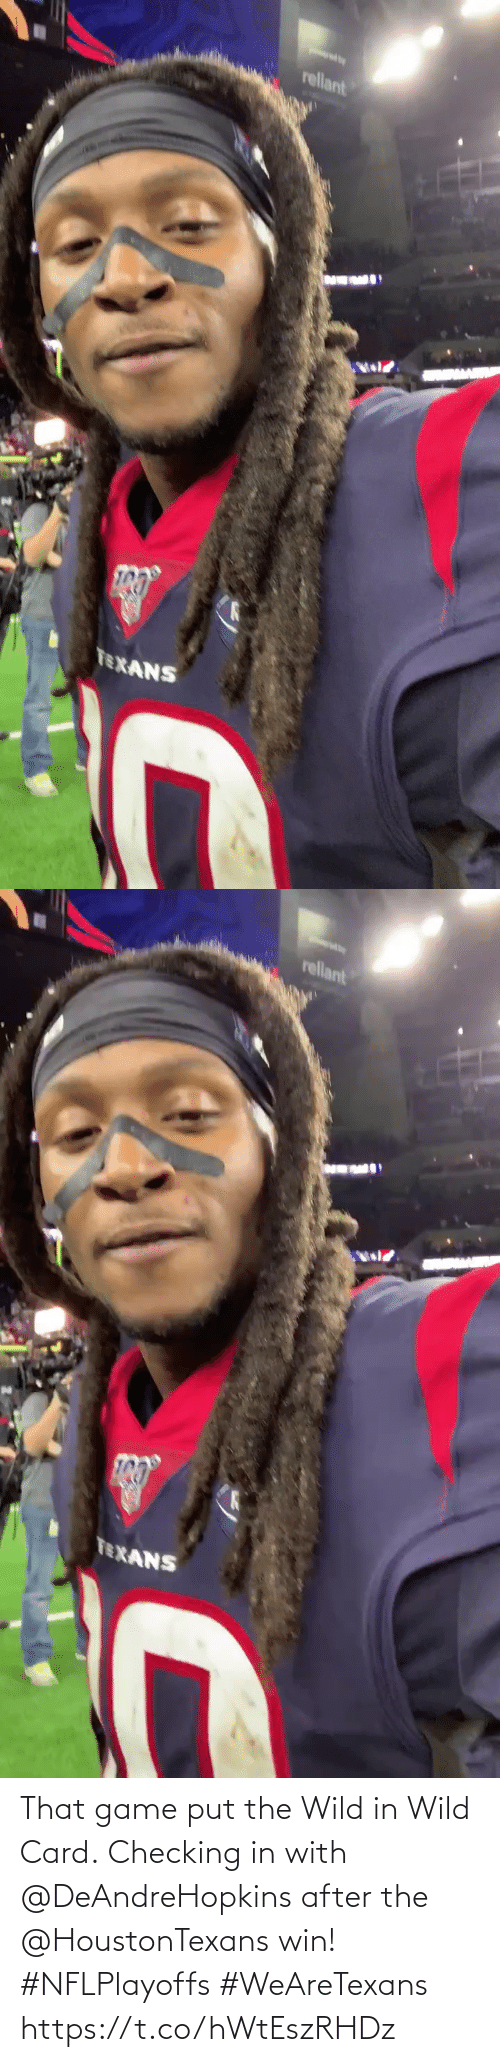 Wild: rellant  TEXANS   rellant  TEXANS That game put the Wild in Wild Card.  Checking in with @DeAndreHopkins after the @HoustonTexans win! #NFLPlayoffs #WeAreTexans https://t.co/hWtEszRHDz